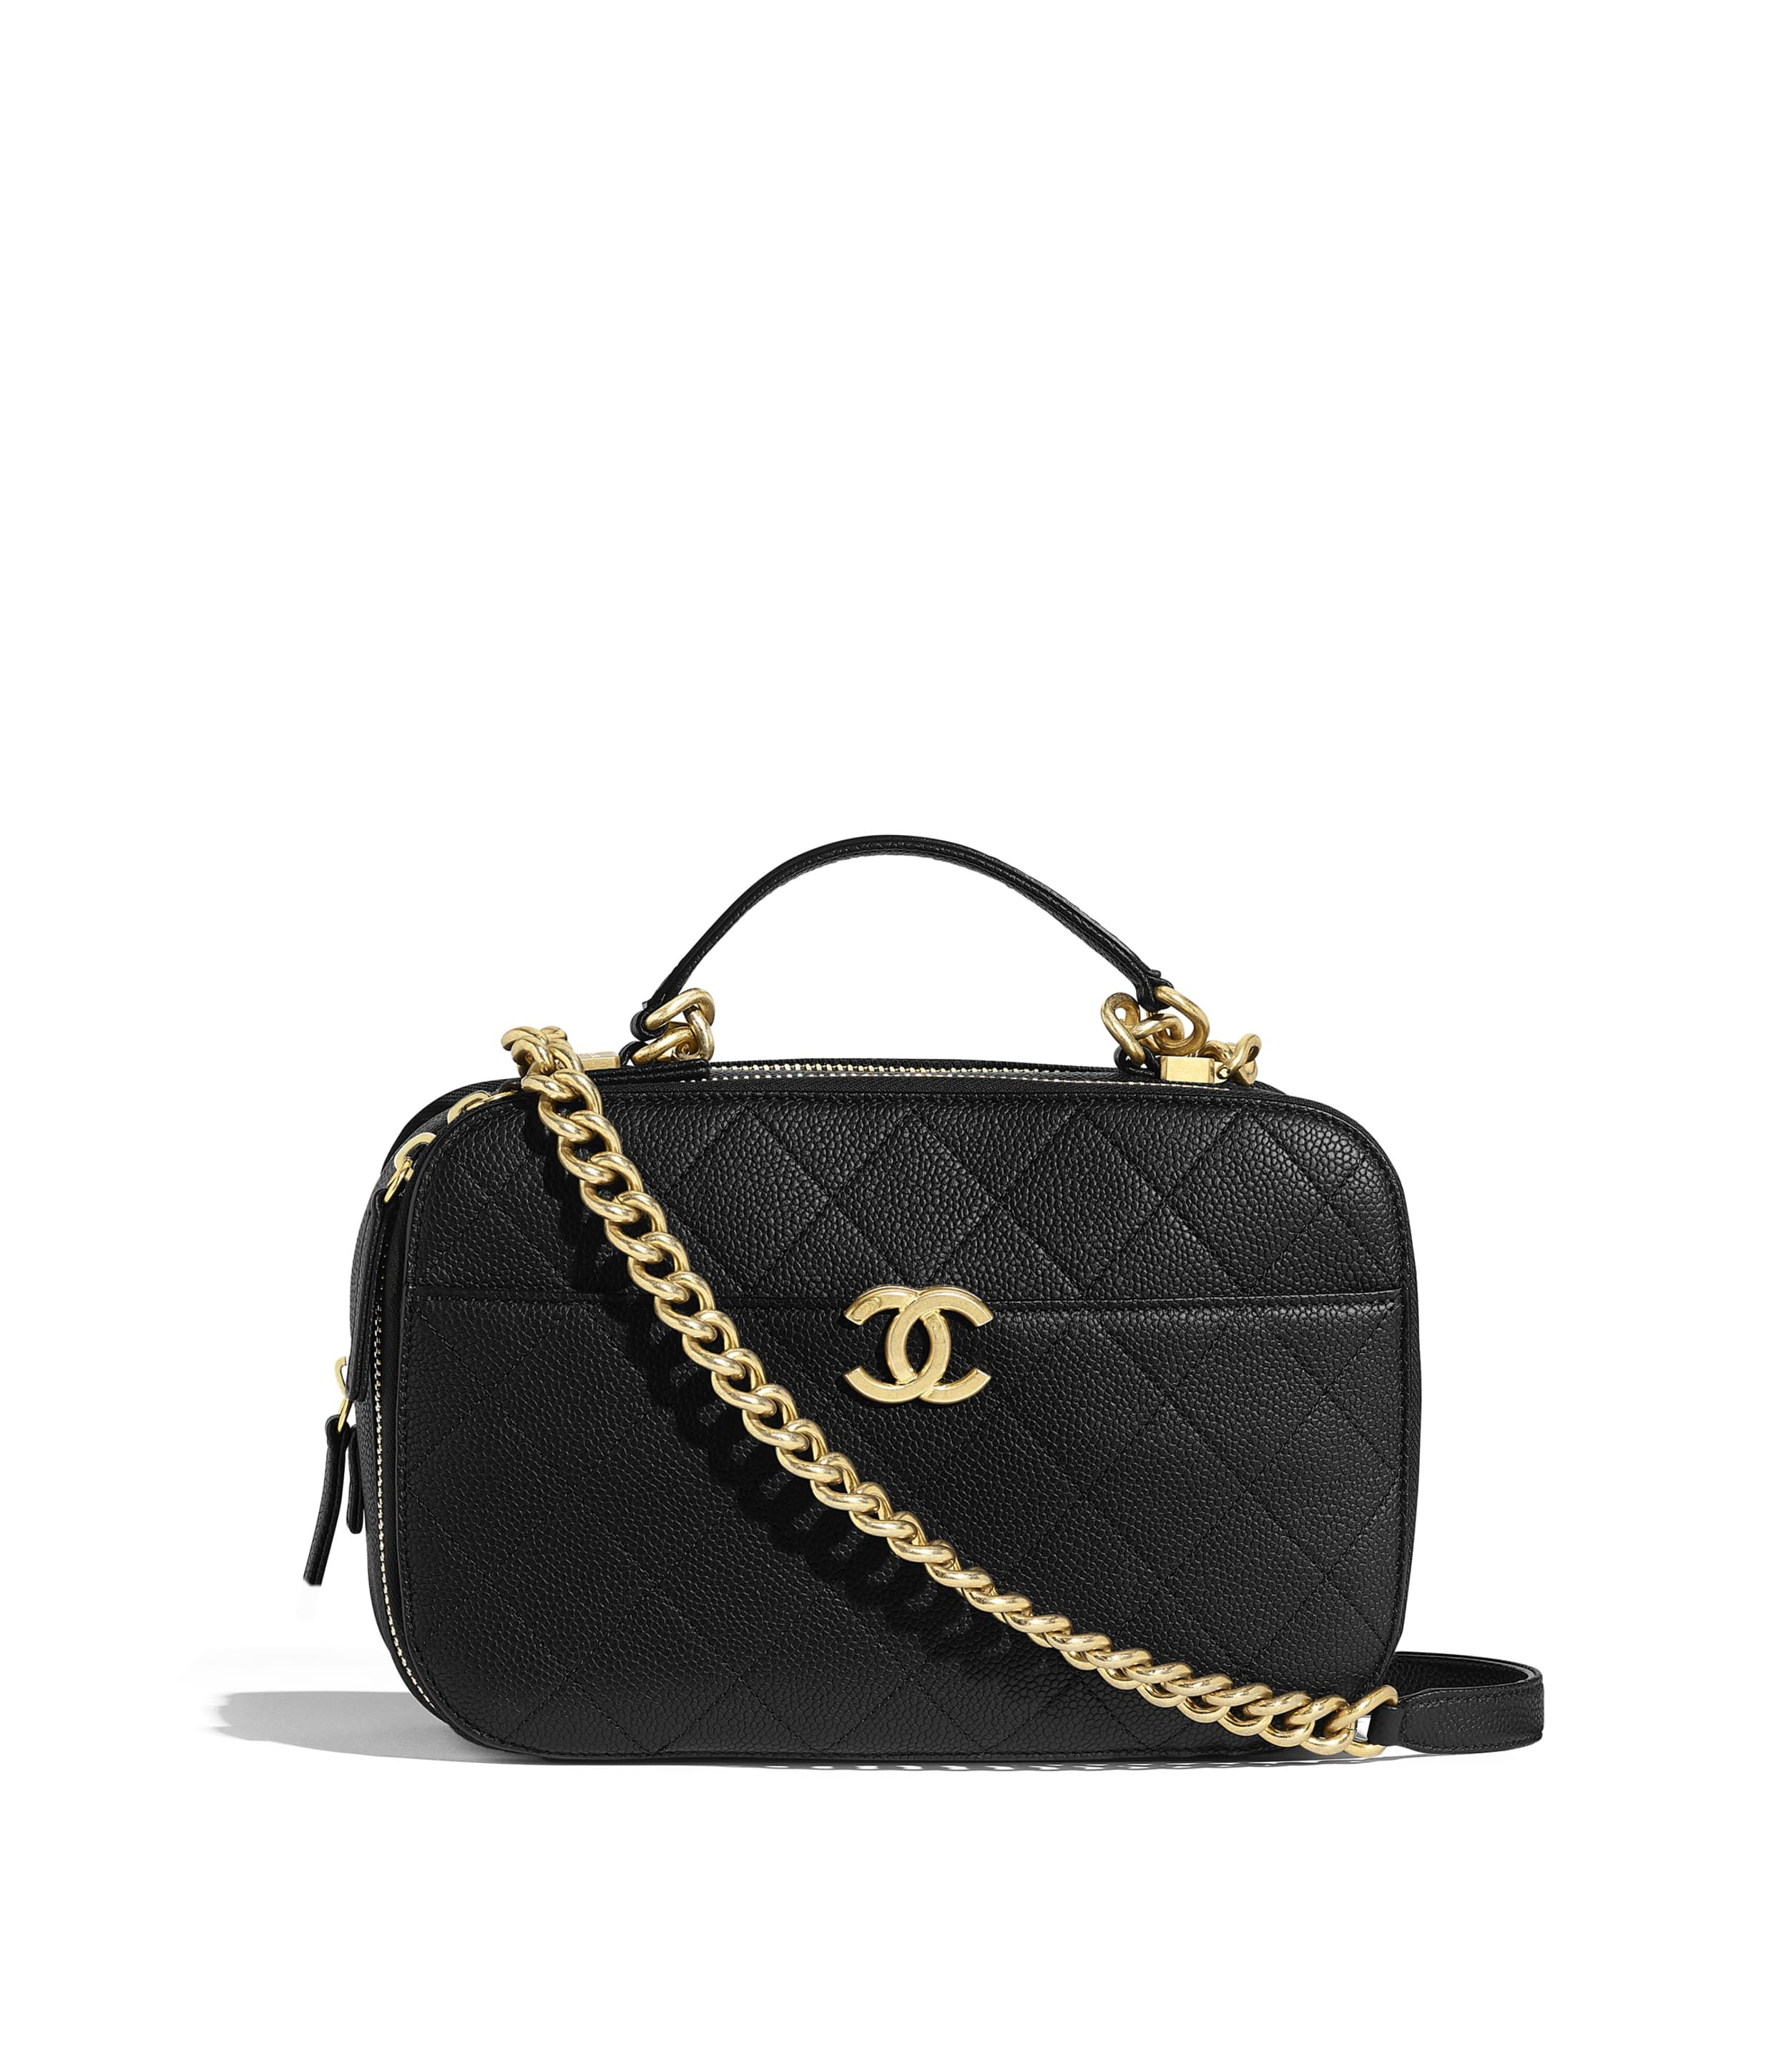 3a6c4be04353 Grained Calfskin & Gold-Tone Metal White Flap Bag in 2019 | Chanel ...